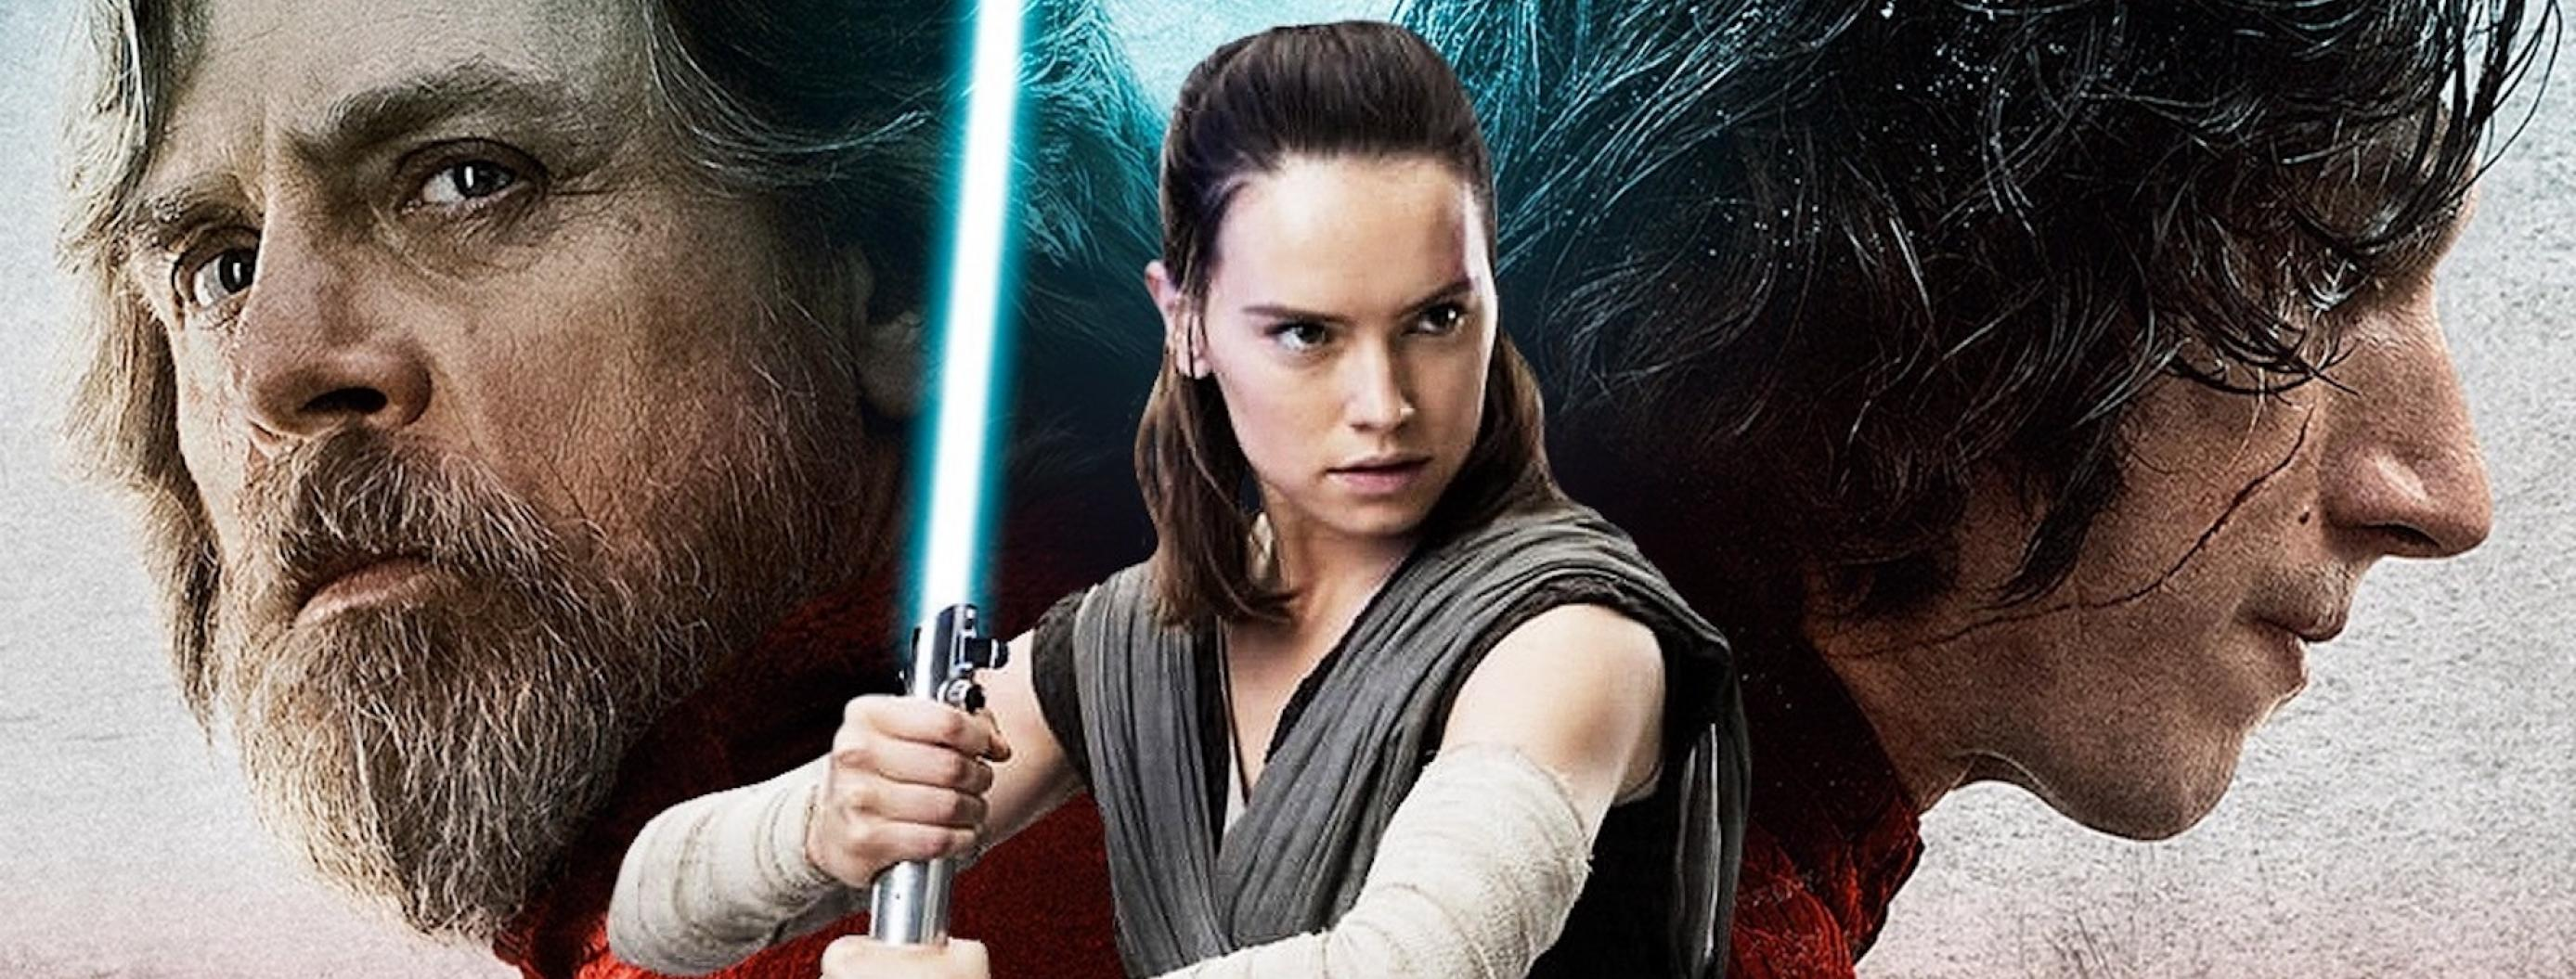 The Last Jedi Director Rian Johnson Responds to Angry Star Wars Fans